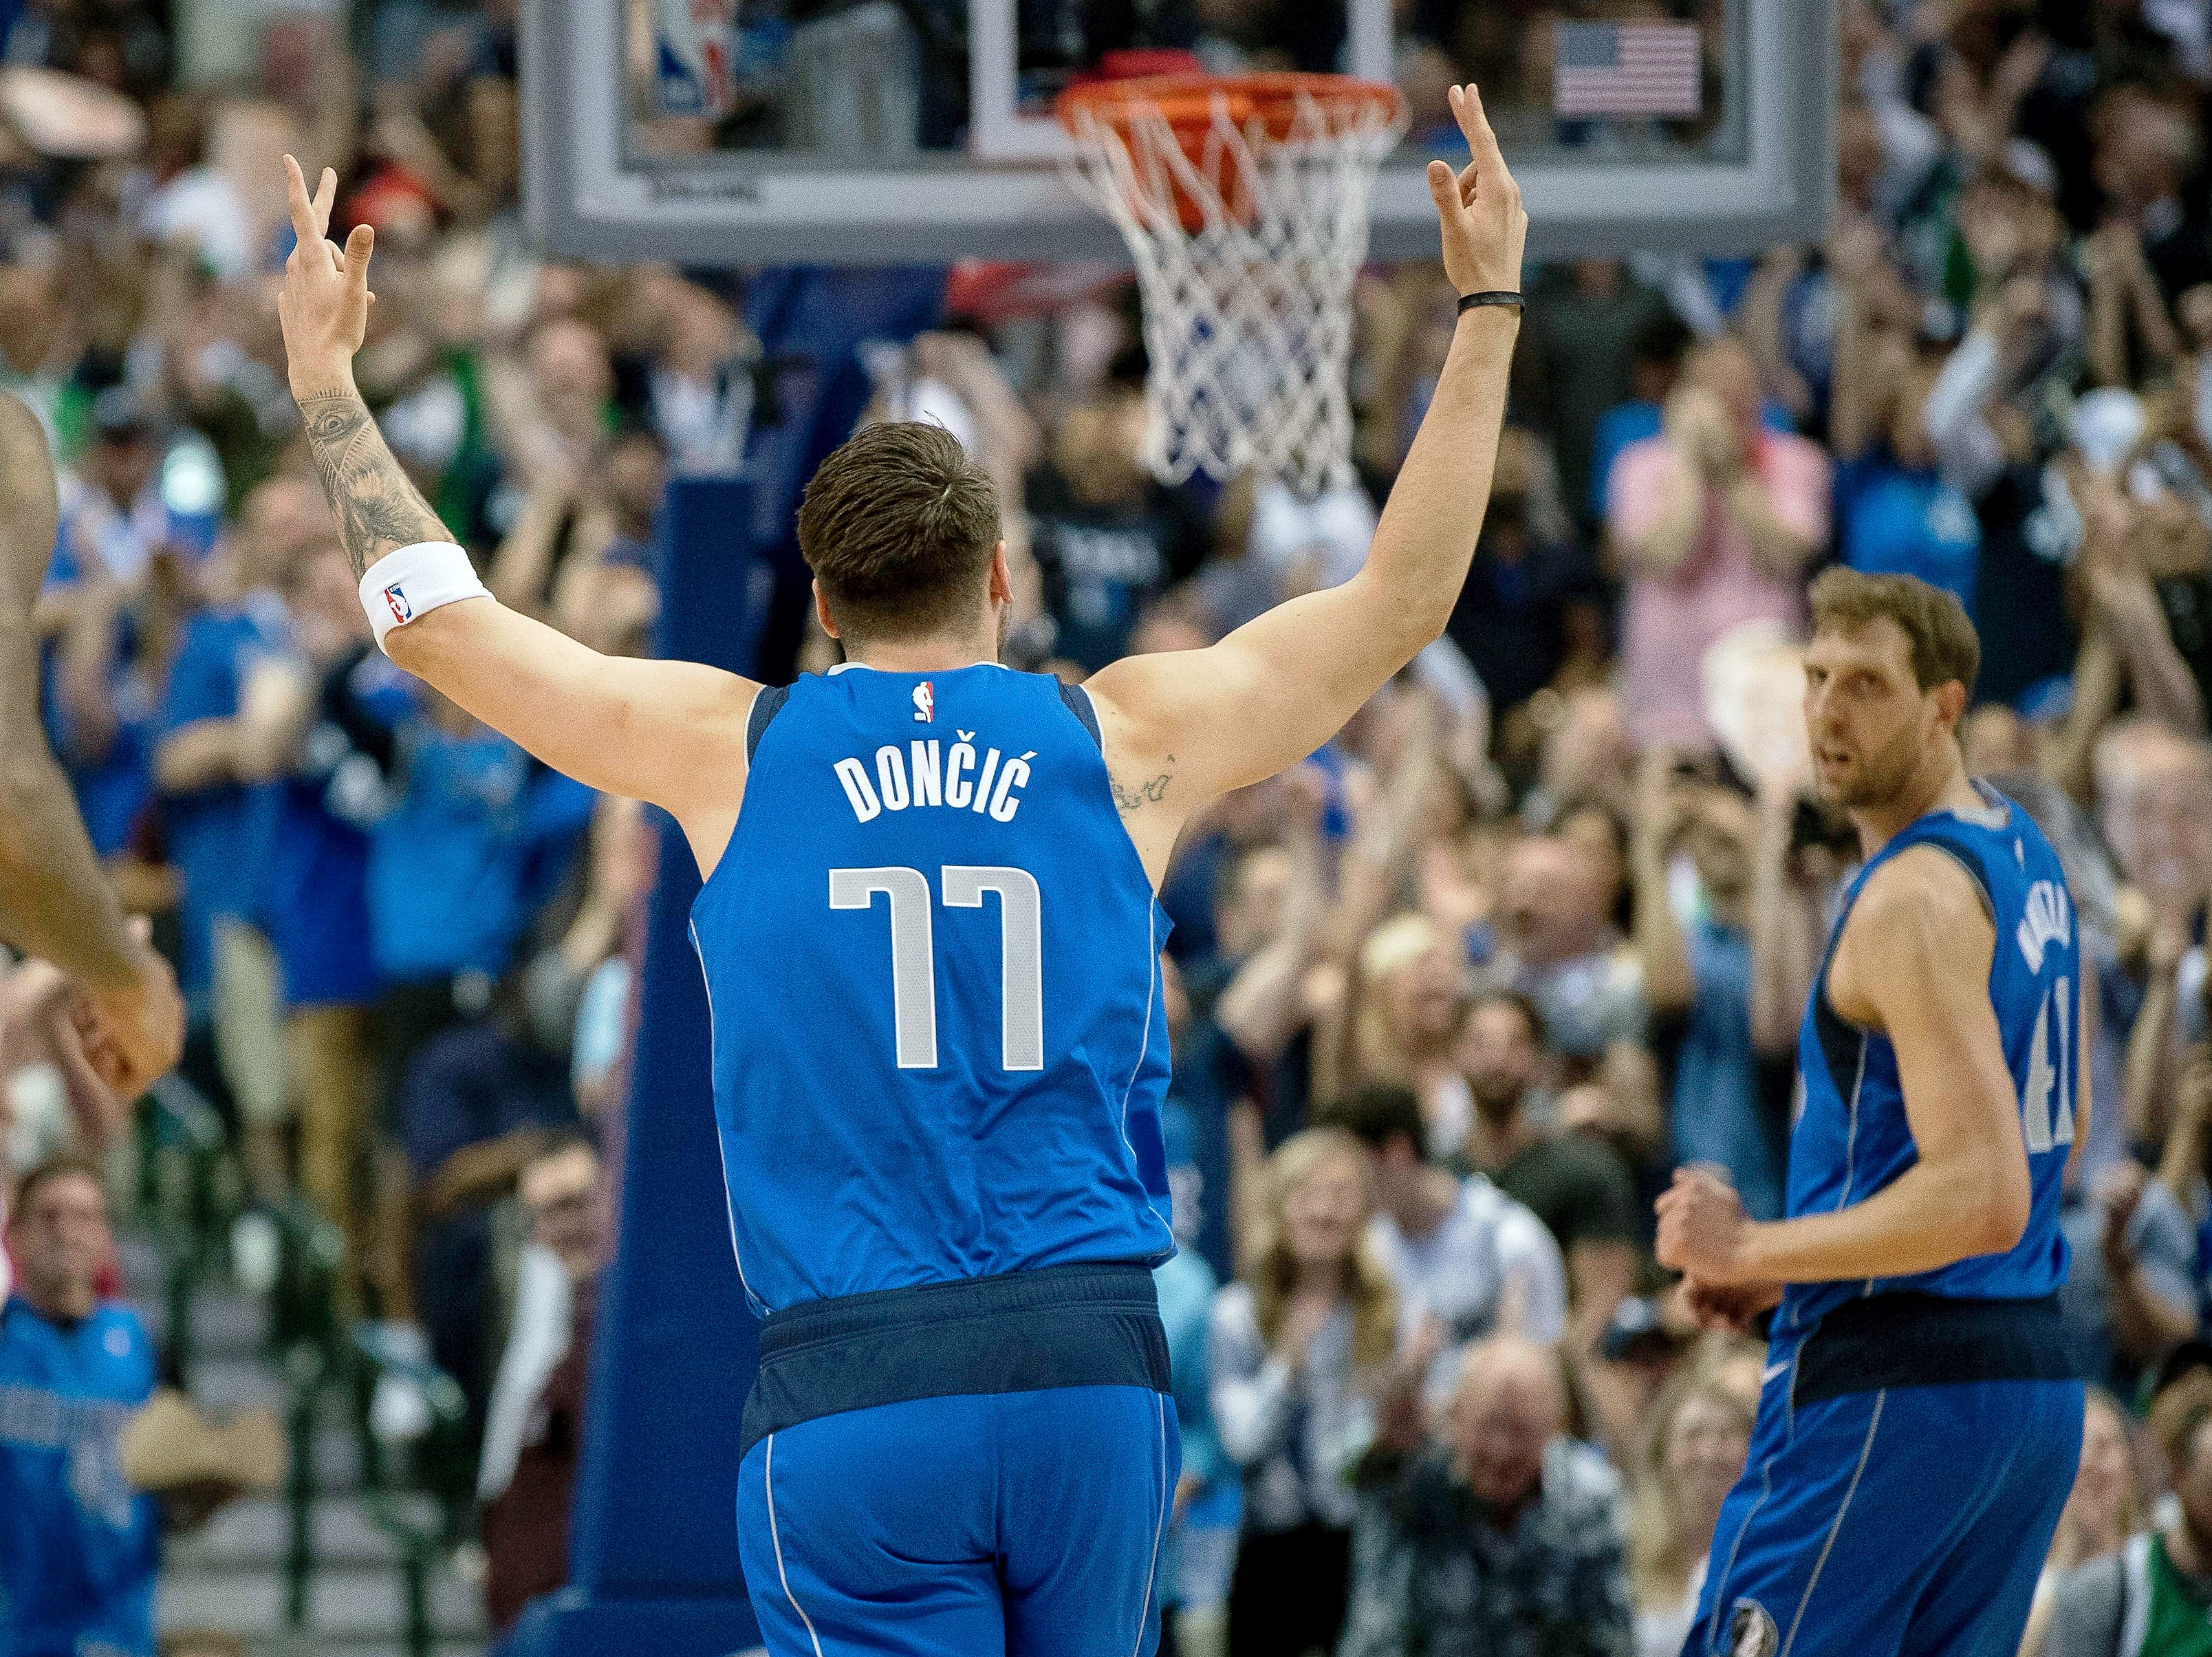 123. Luka Doncic, Mavericks (April 9):21 points, 16 rebounds, 11 assists in 120-109 win over Suns.